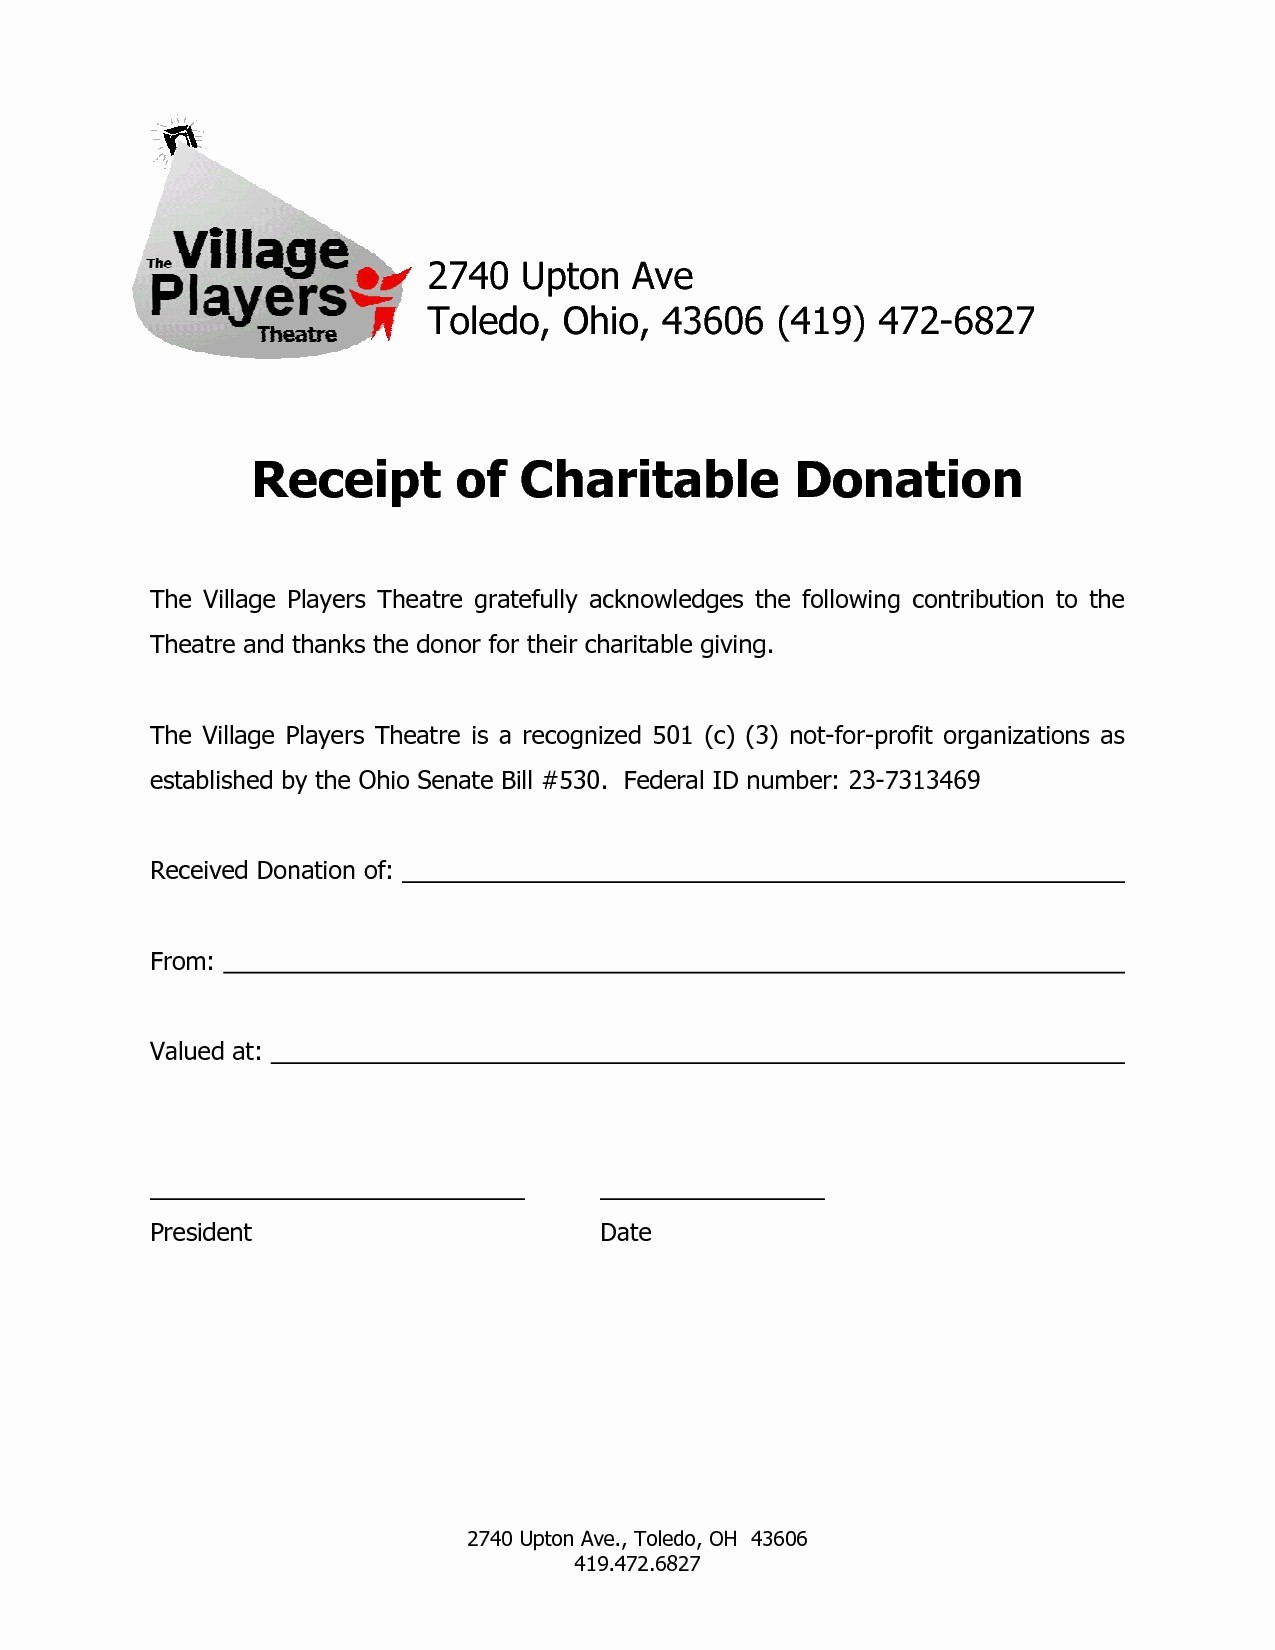 Non Profit Donation form Template Awesome Non Profit Tax Deduction Letter Template Collection